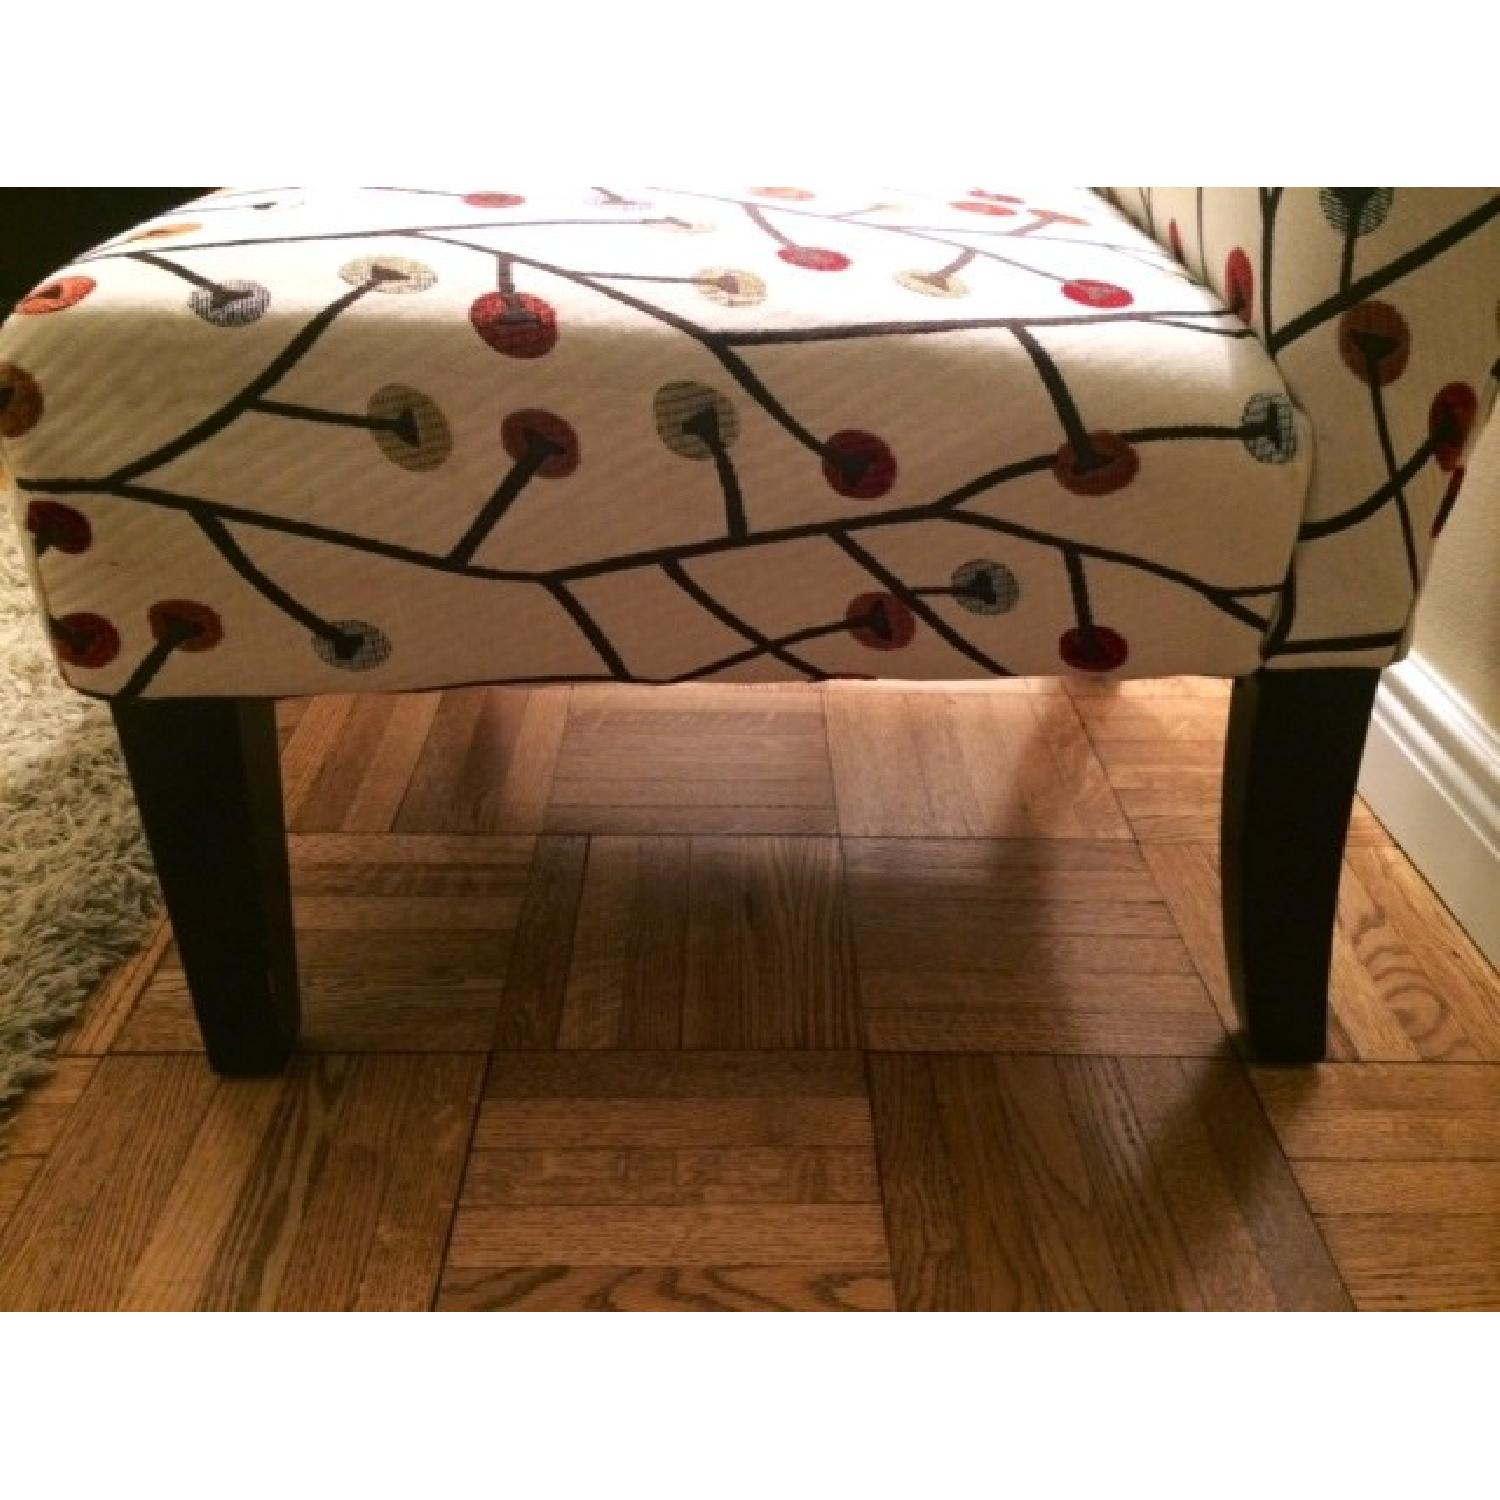 Used accent chairs for sale in NYC - AptDeco